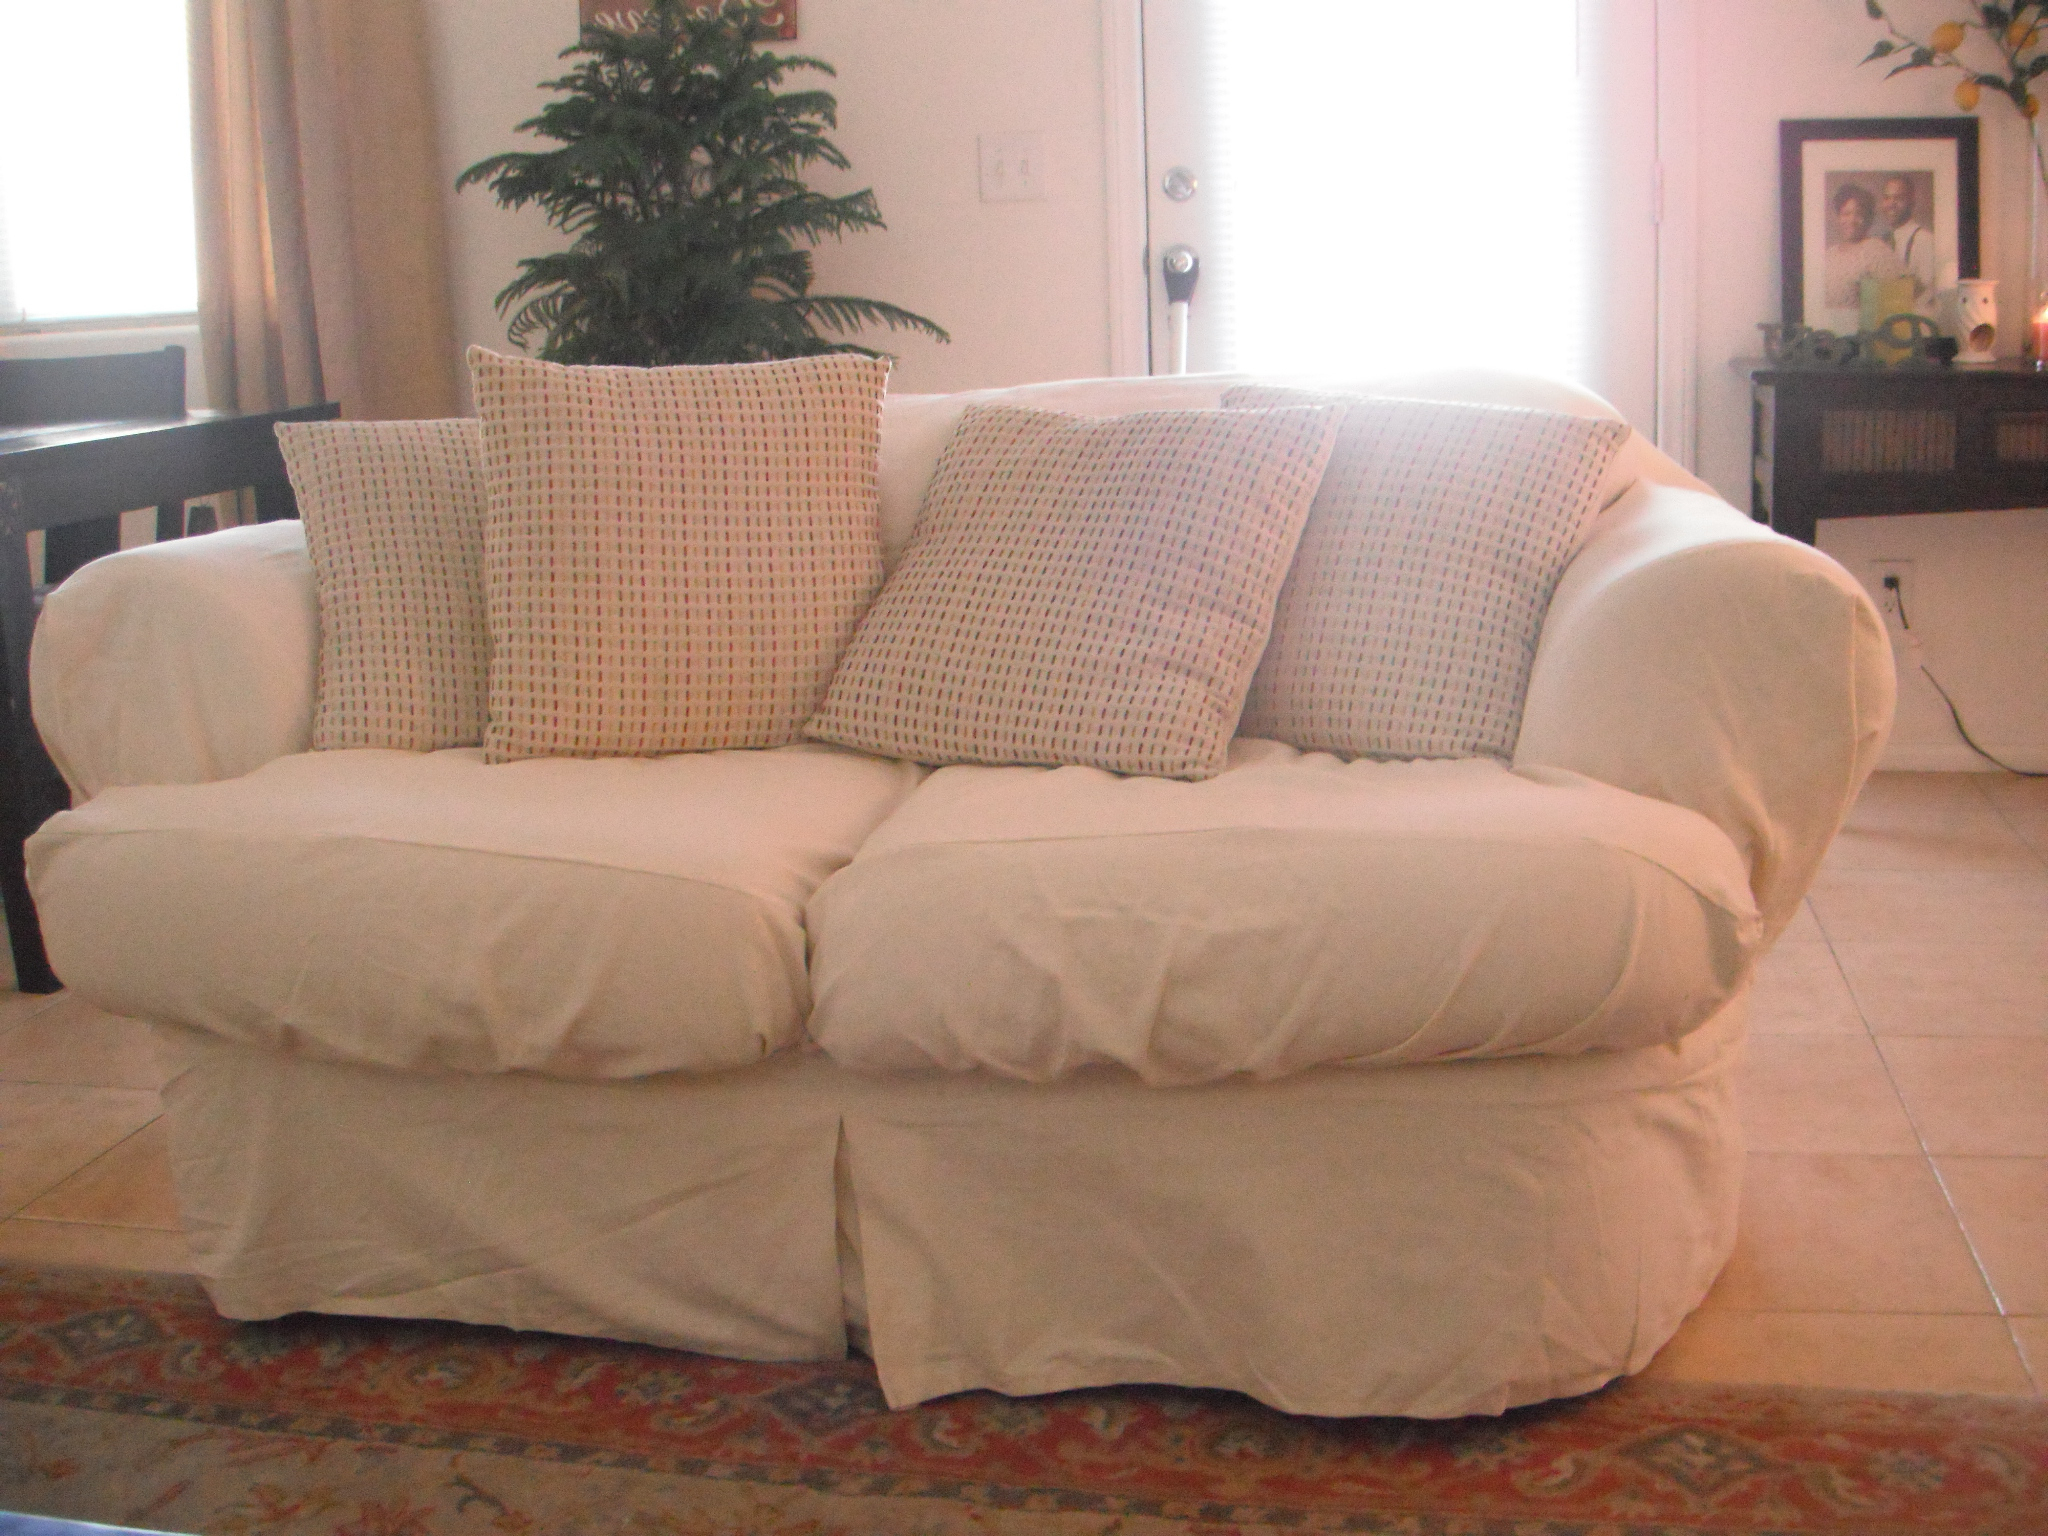 Well Known Slipcovers For Leather Couches Patio Chair How To Cover A Sofa With Within Sofa And Chair Slipcovers (Gallery 13 of 20)